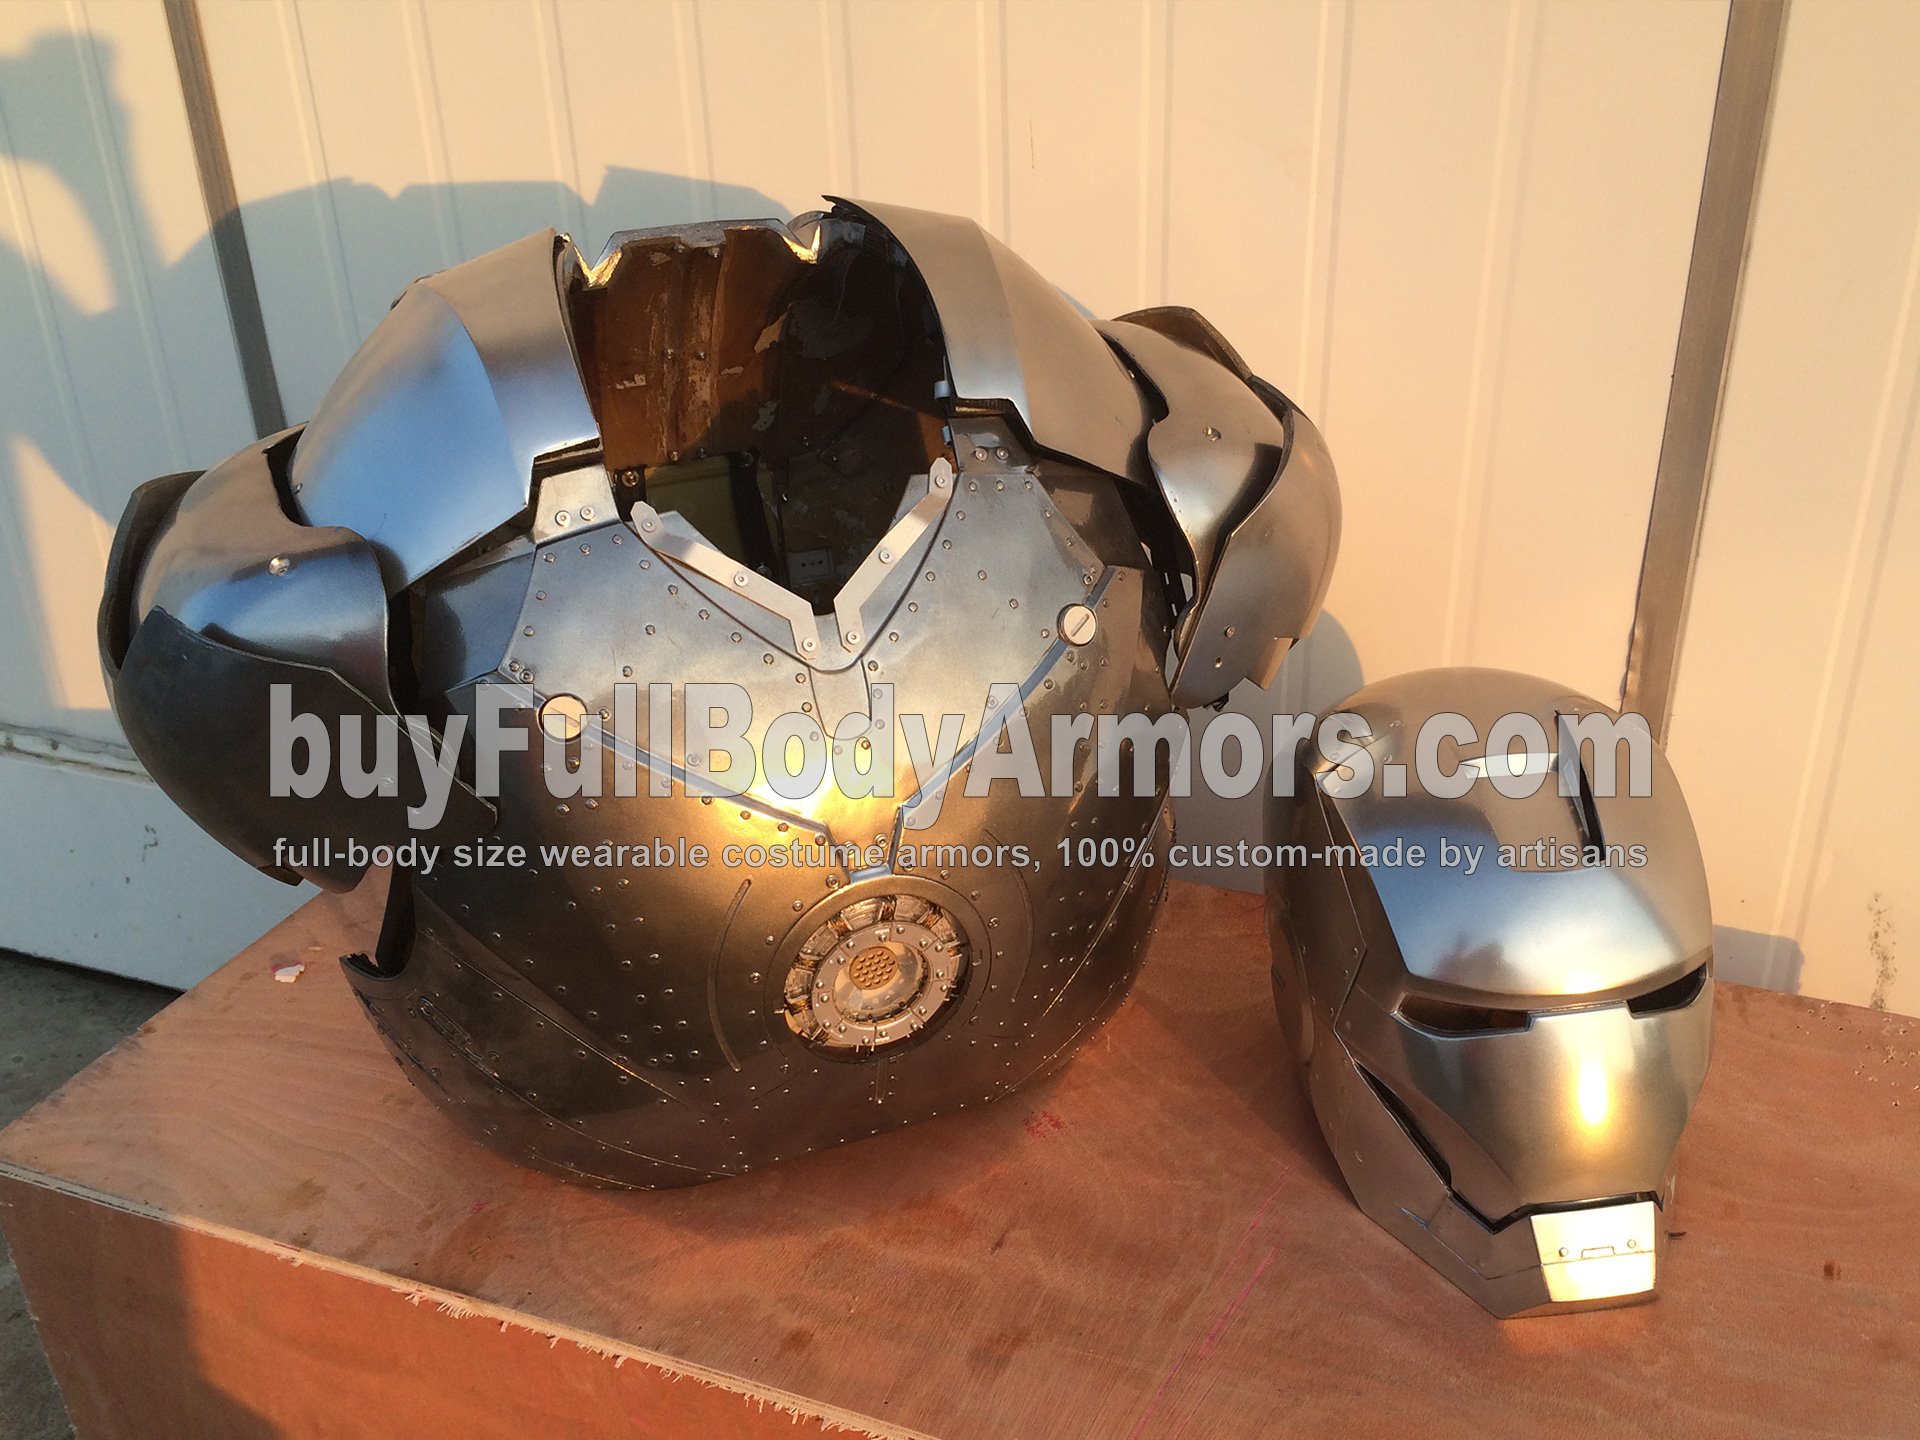 Wearable Iron Man Suit Mark II (2) Armor Costume Prototype - Helmet & Chest front